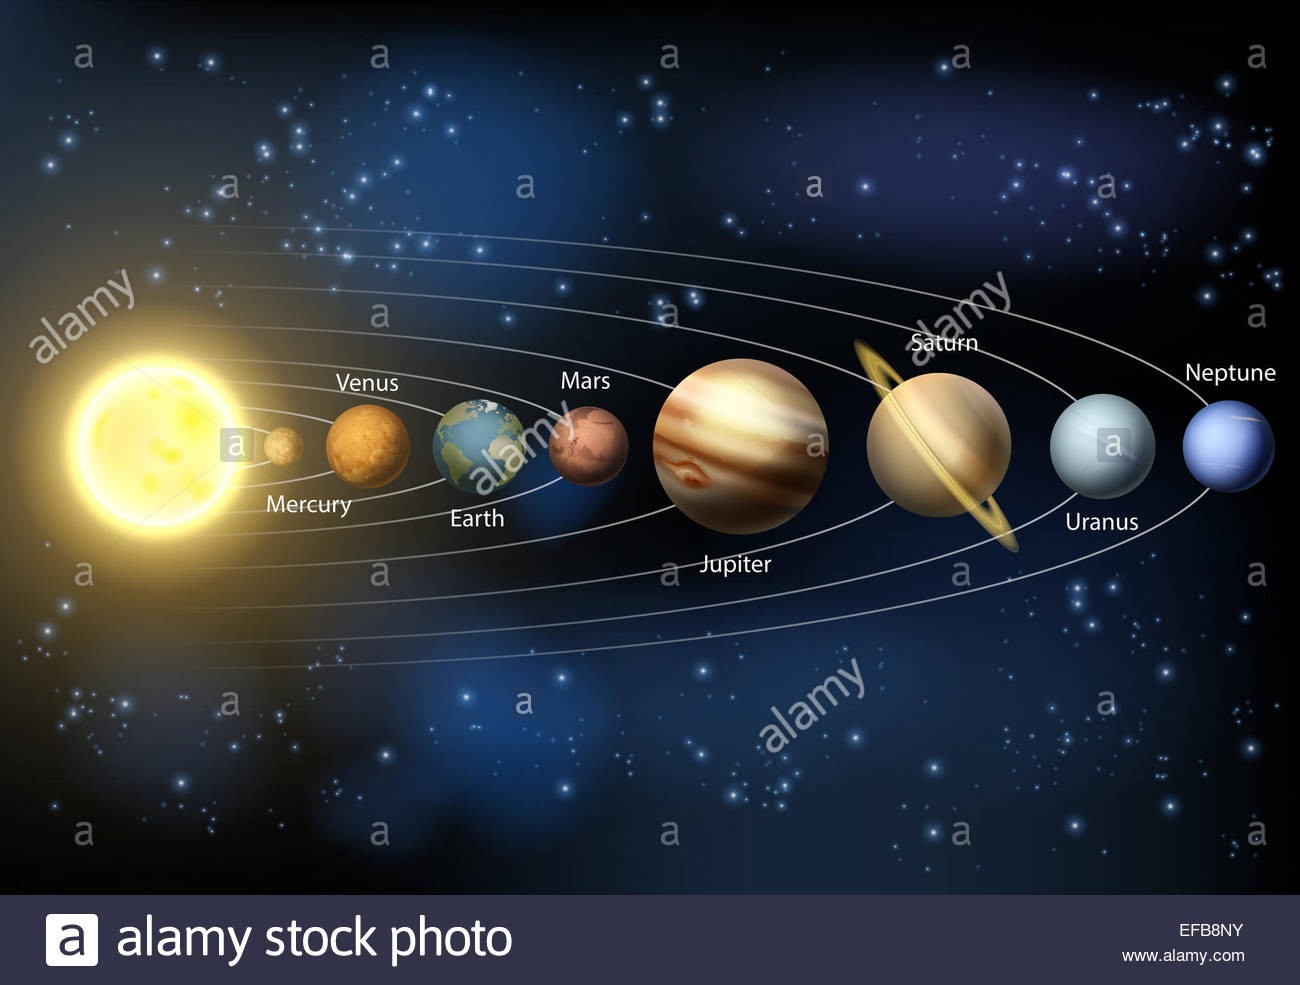 Solar System Planets Name Diagram